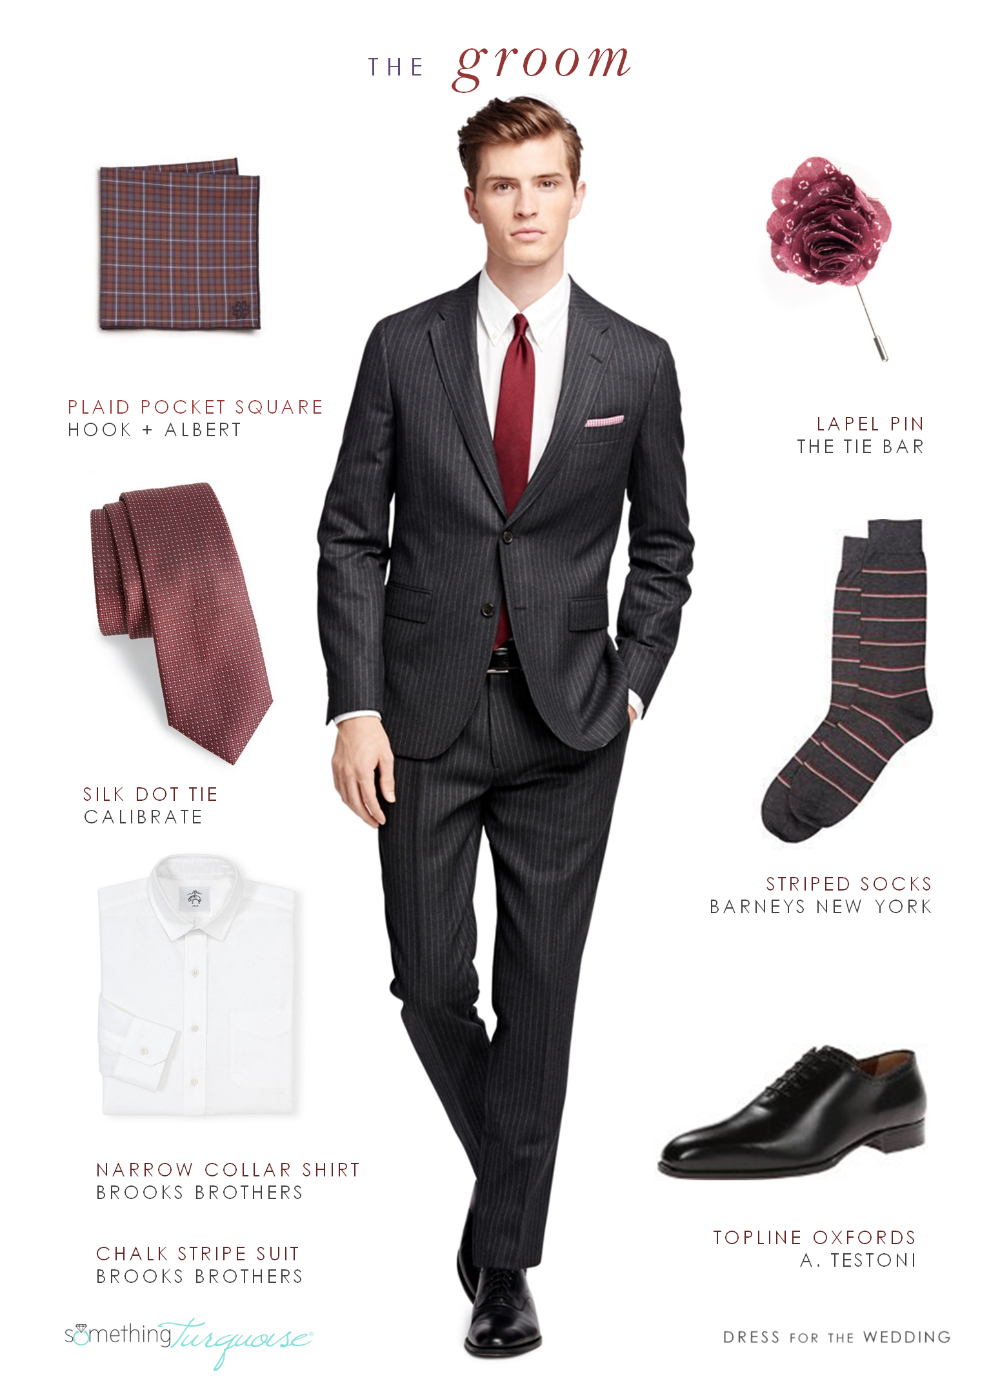 Grooms style for fall |Created by Dress for the Wedding for Something Turquoise